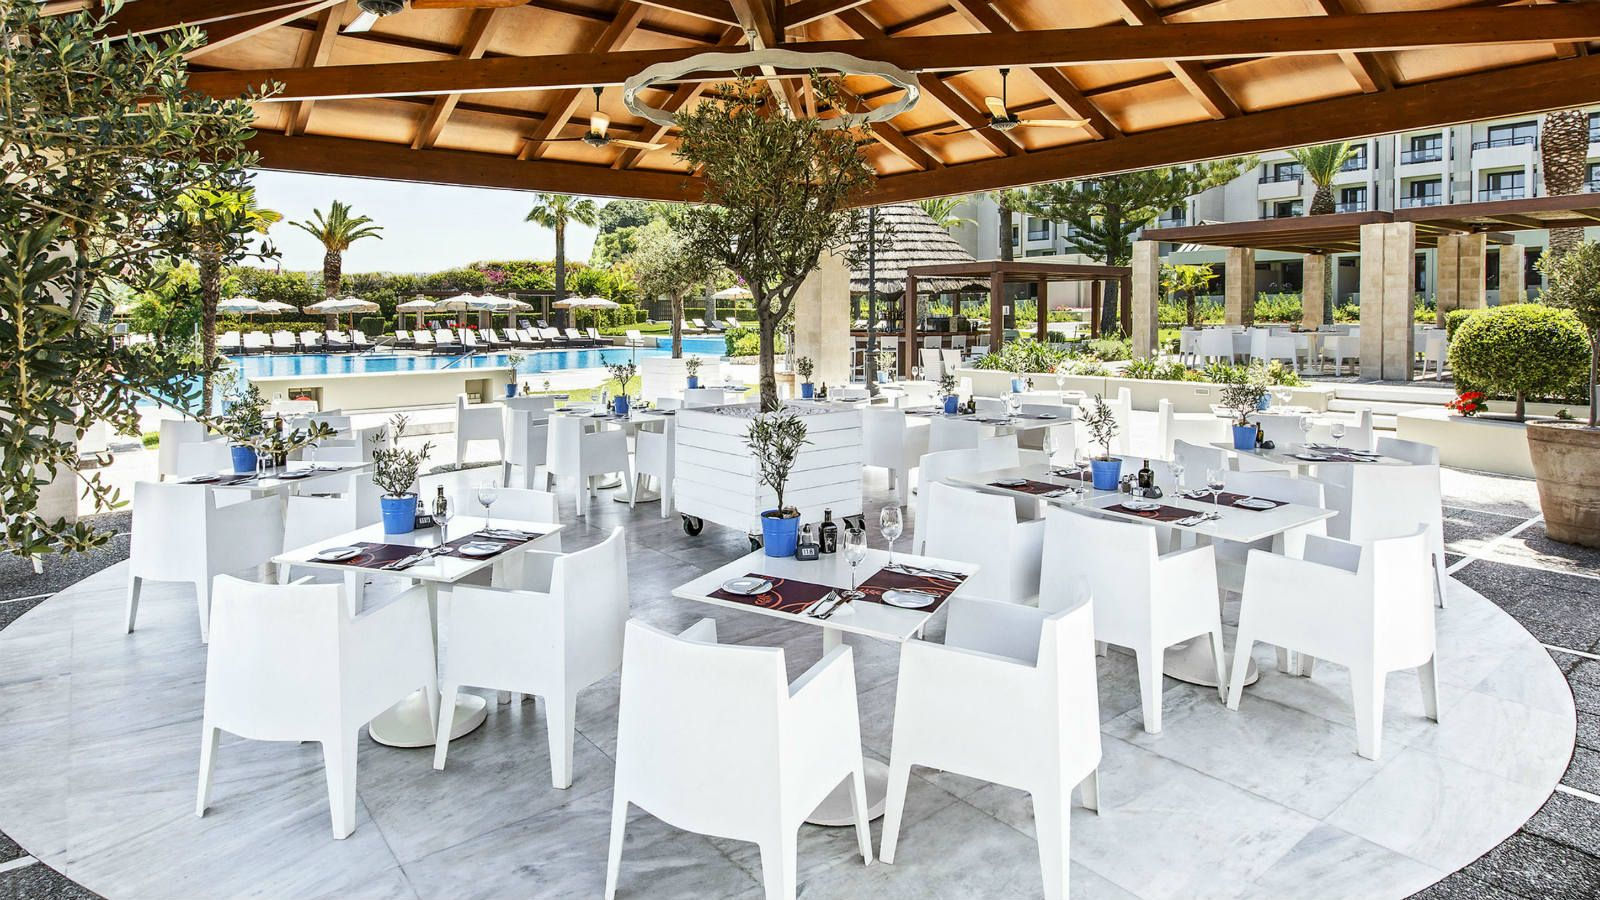 Mediterraneo Restaurant by the main pool at the Sheraton Rhodes Resort